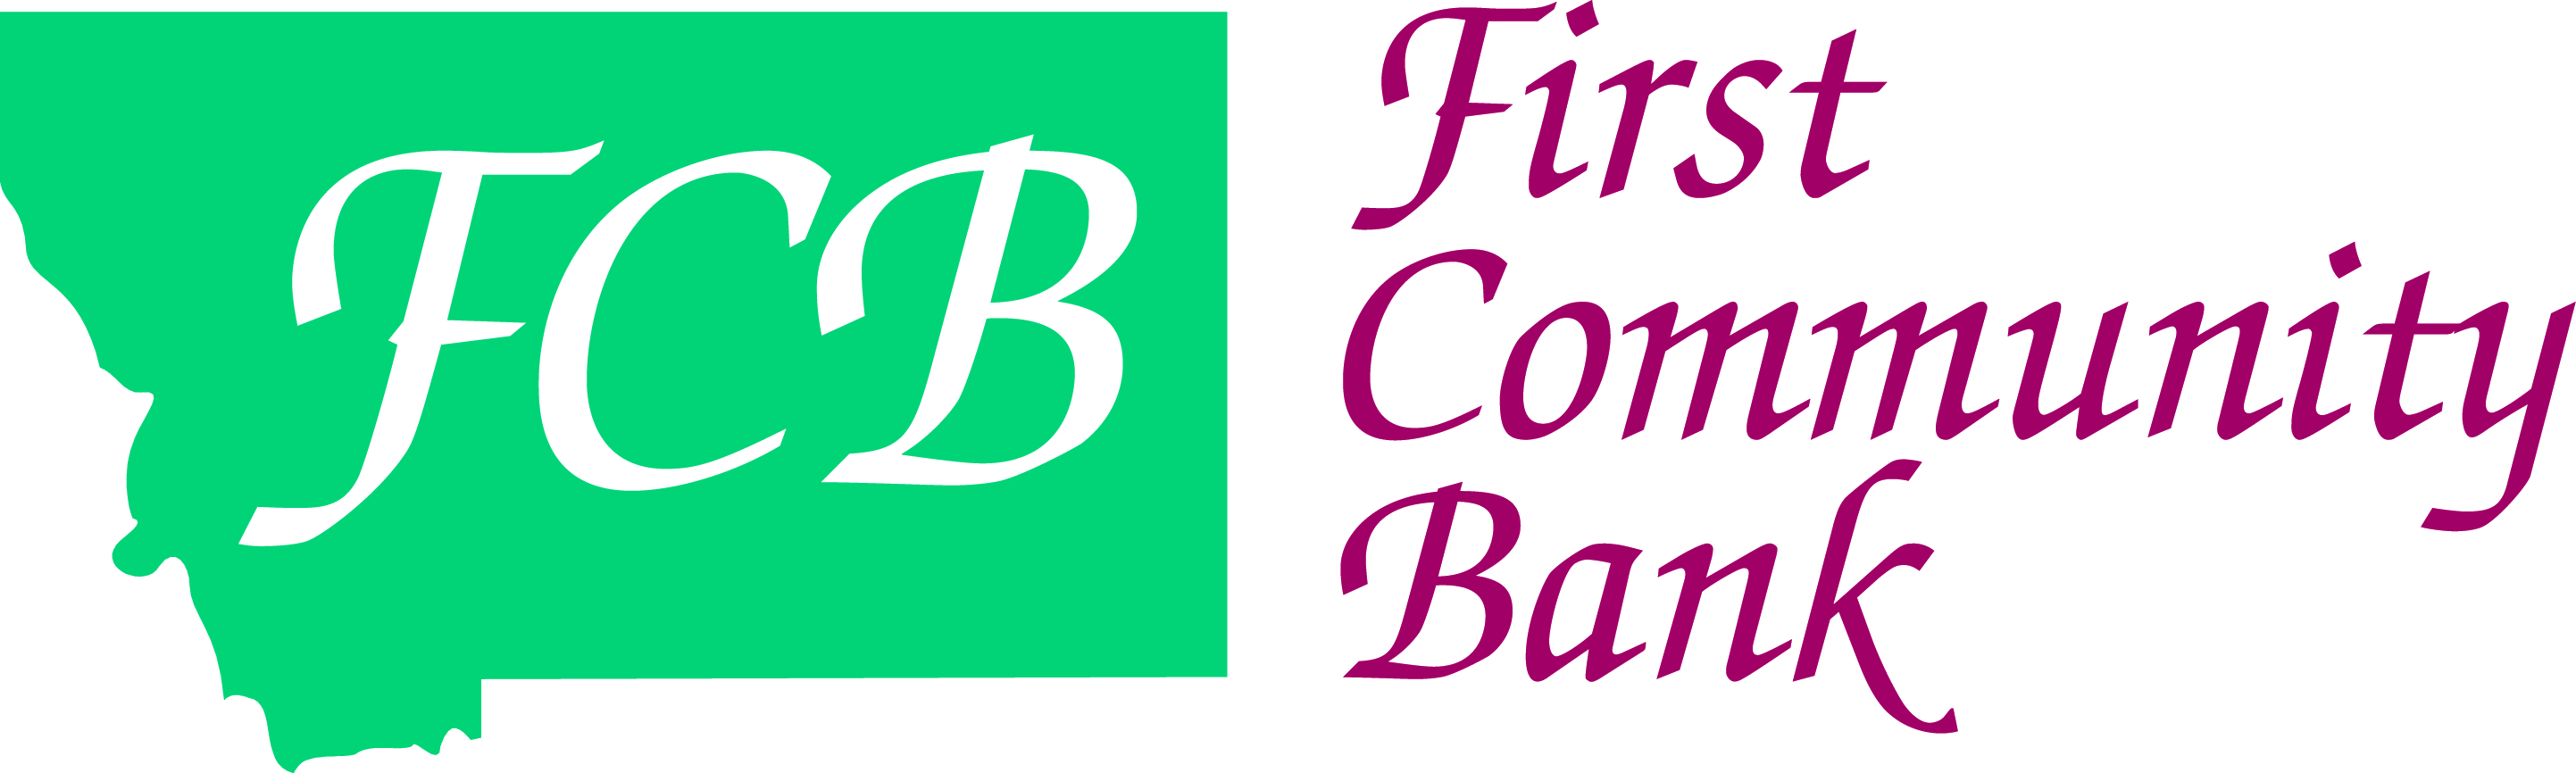 WELCOME BAG SPONSOR - FIRST COMMUNITY BANK - Logo